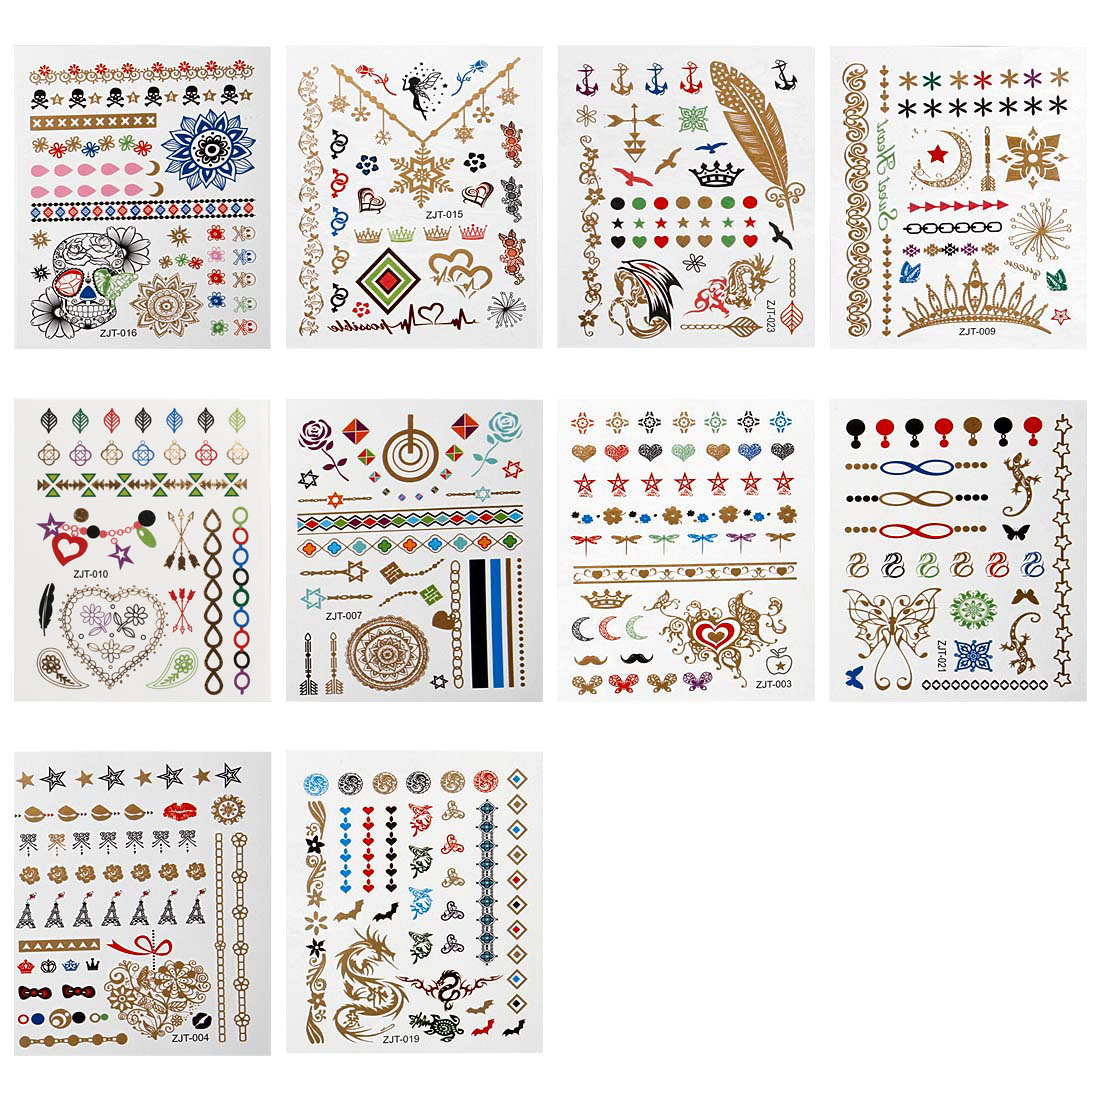 BMC Fashionable 10pc Colorful Mixed Metallic Design Temporary Hand Tattoo Bundle